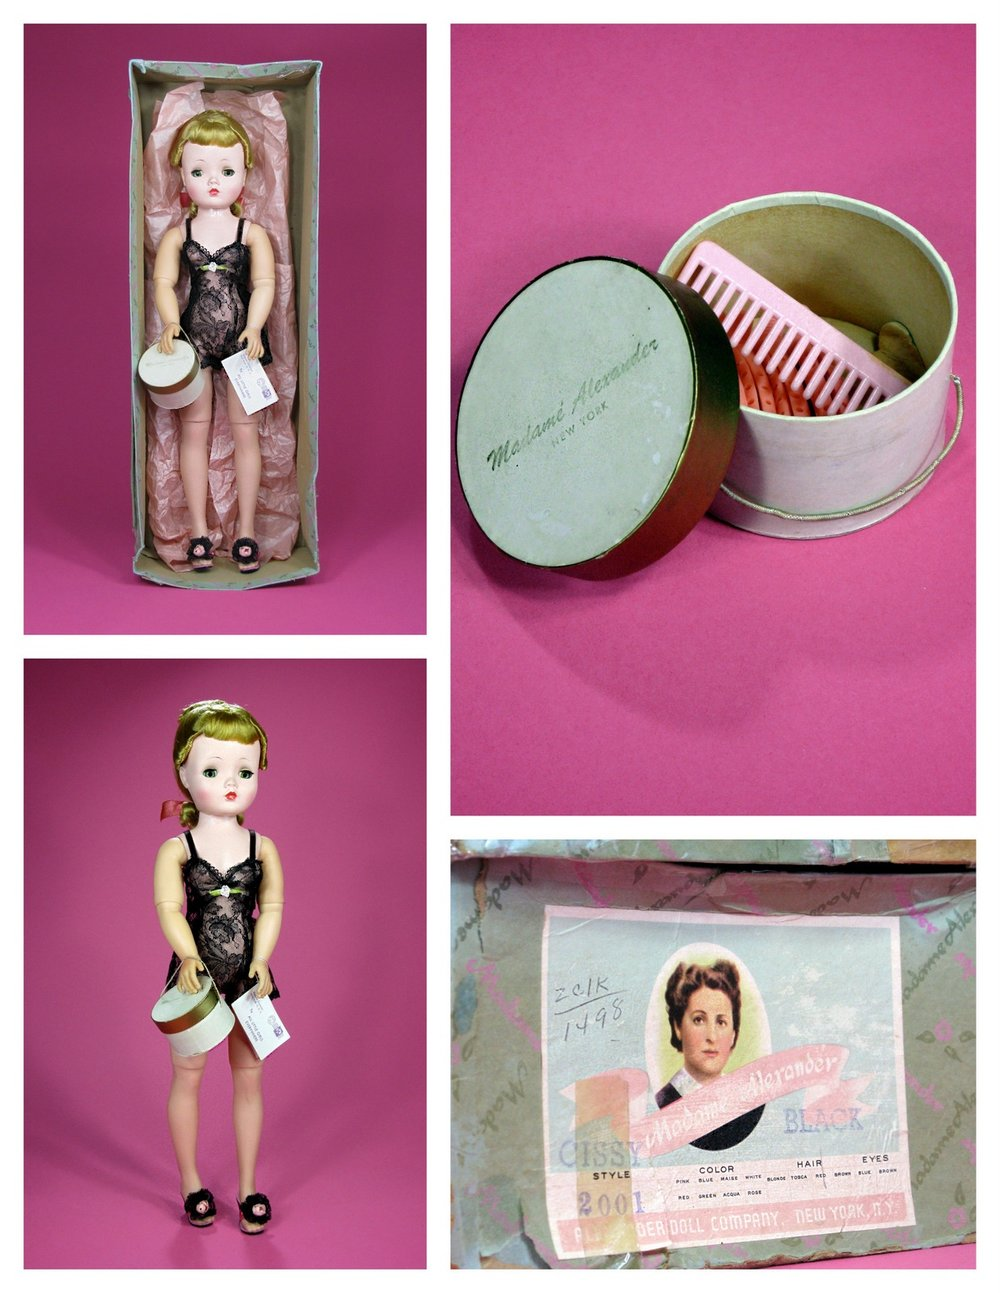 The Basic Cissy came dressed in a cream or black chemise, wearing coordinated high heel mules, hose, carrying a hat box with hair supplies and a hang tag on the wrist. Although the 1958 Basic Cissy did wear pearl earrings, more typically these dolls did not. The dolls box has a check-box for both blue eyes and brown. This particular Basic Cissy is from 1956.